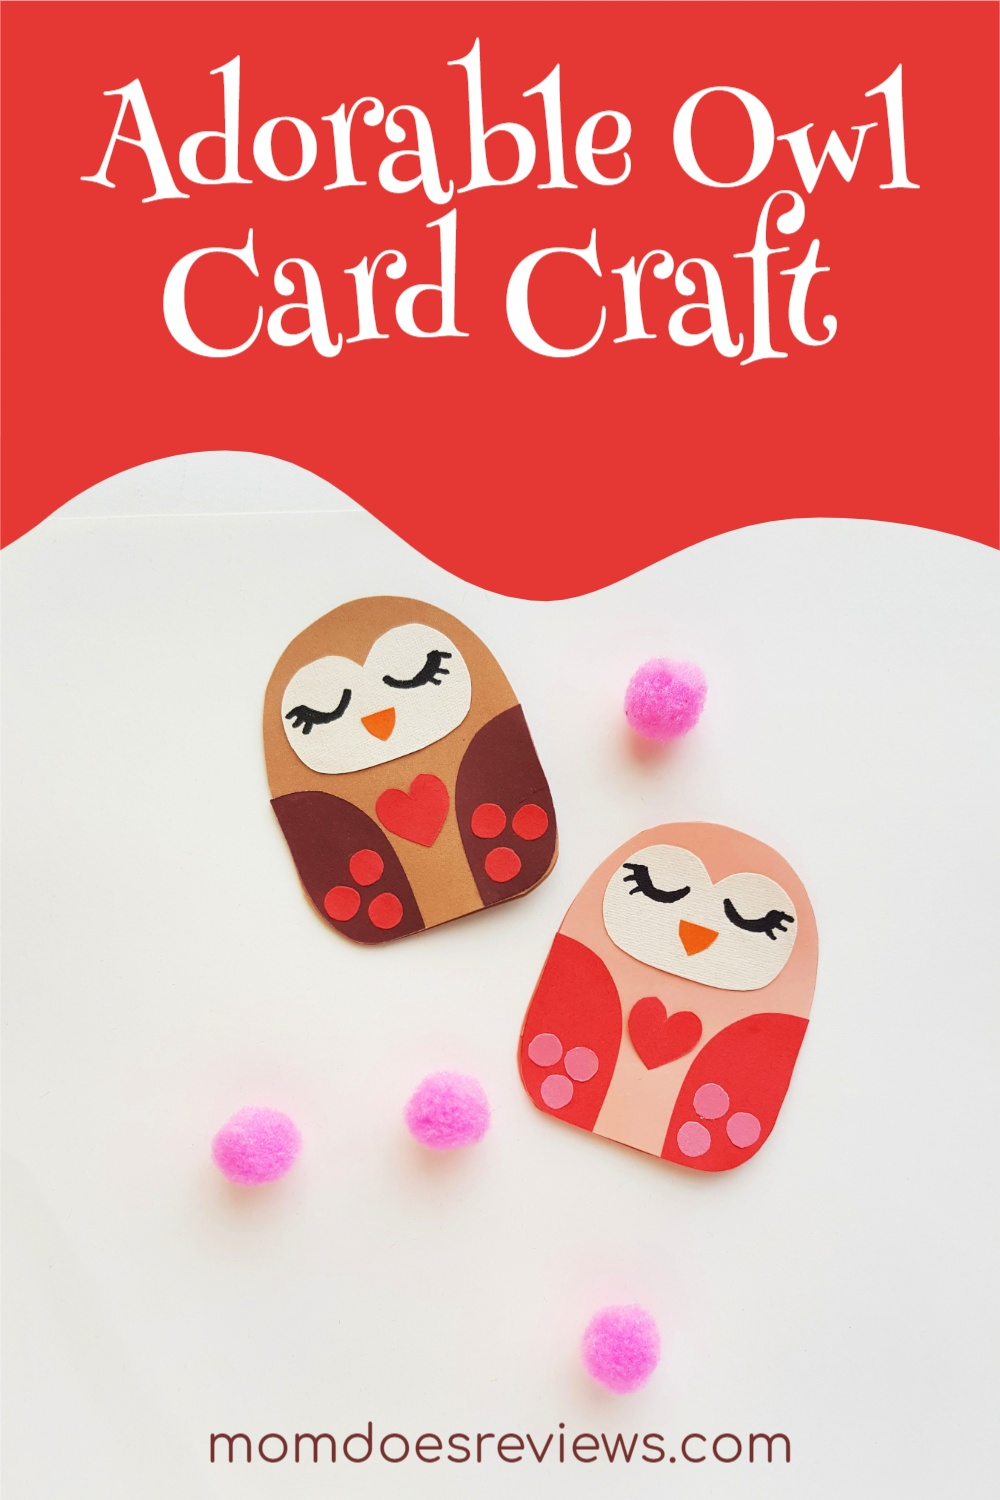 Adorable Owl Card Craft the Kids Will Love #craft #owlcraft #papercraft #valentinesday